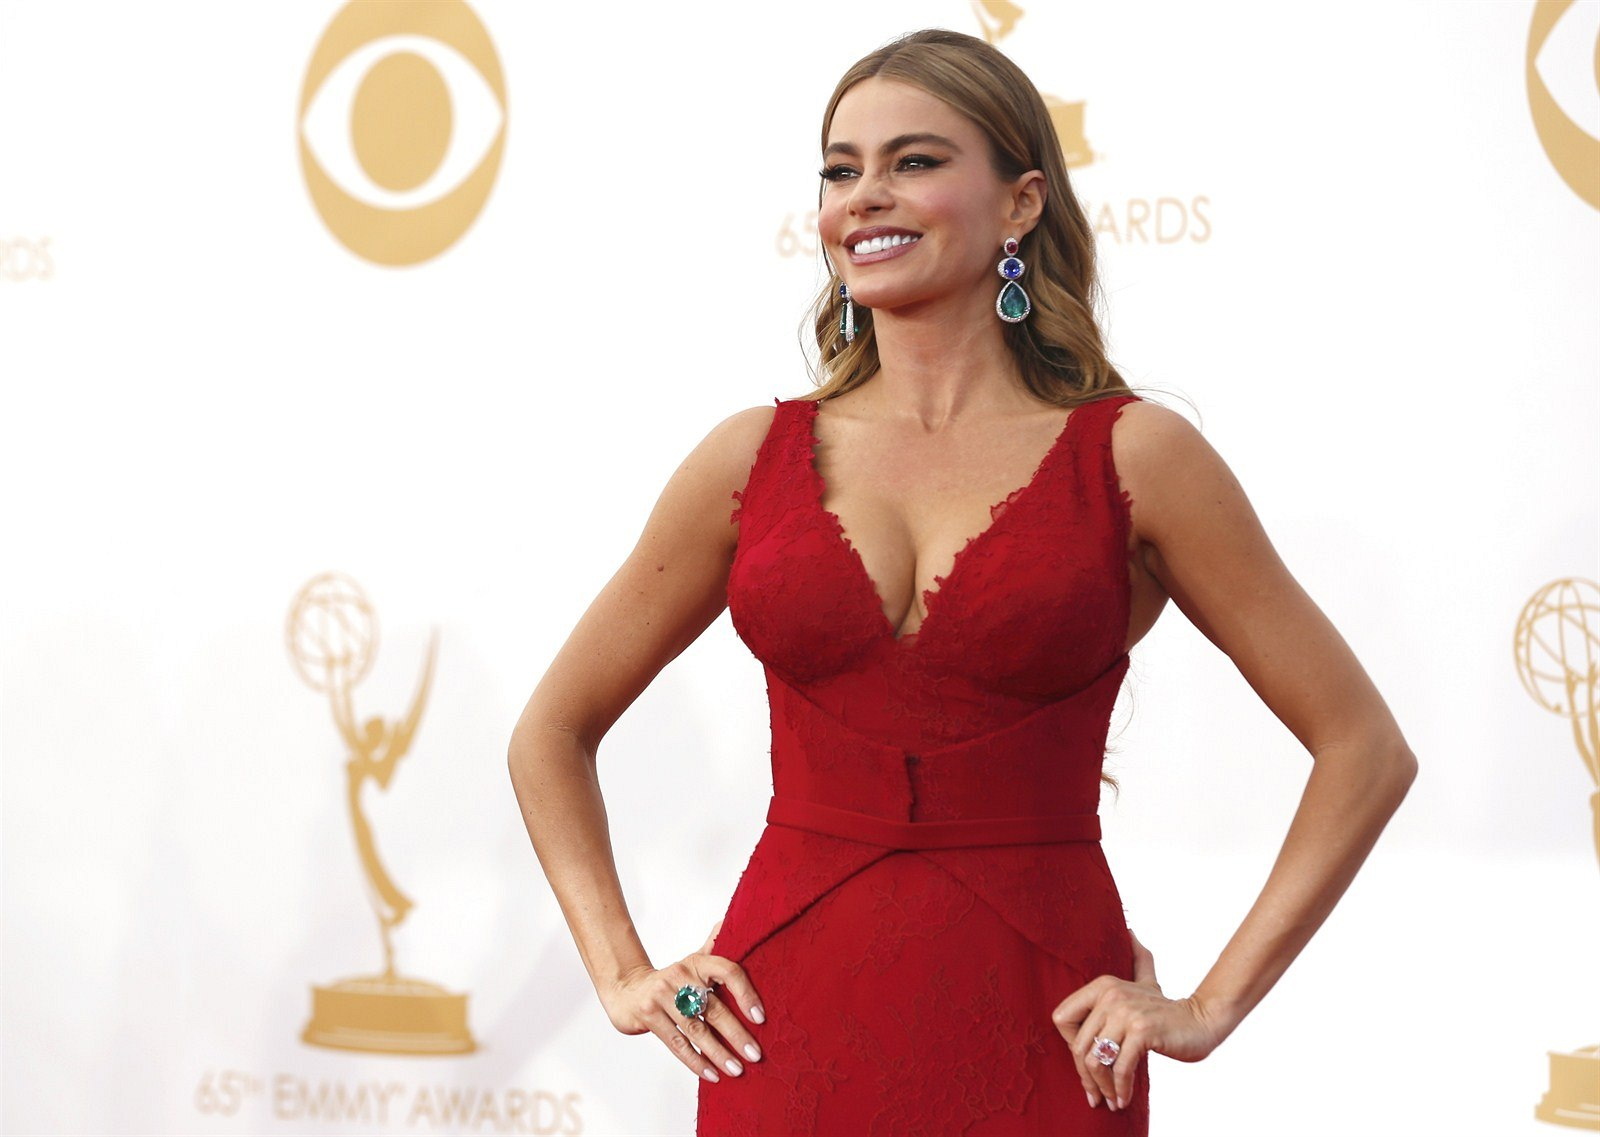 Sofia Vergara na Emmy Awards (Los Angeles, 22. září 2013)